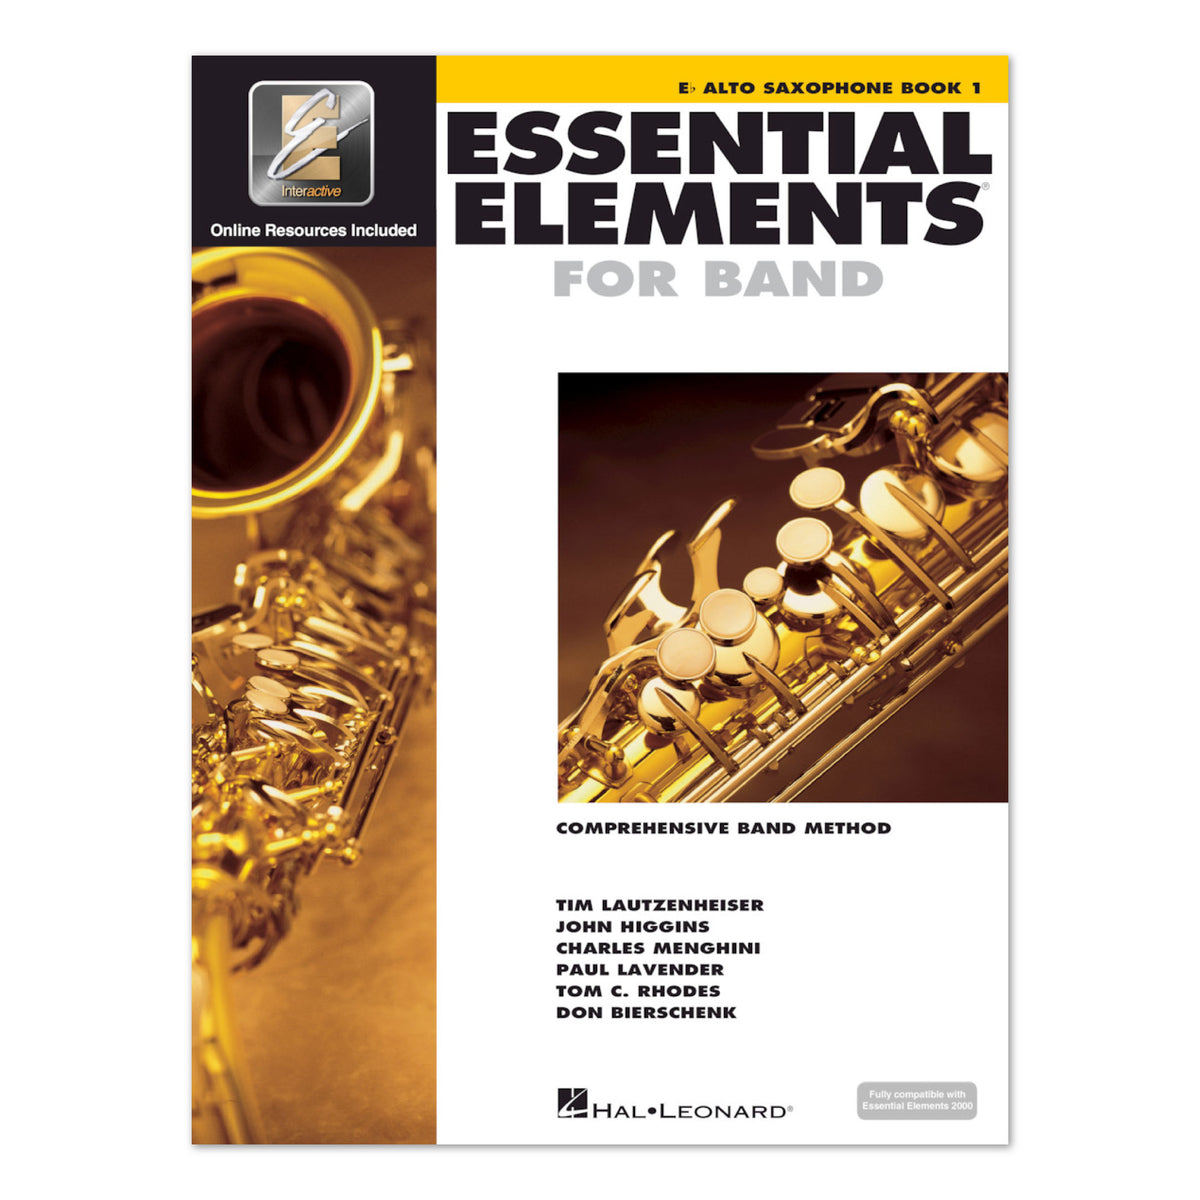 Hal Leonard Essential Elements for Band - Eb Alto Saxophone - Book 1